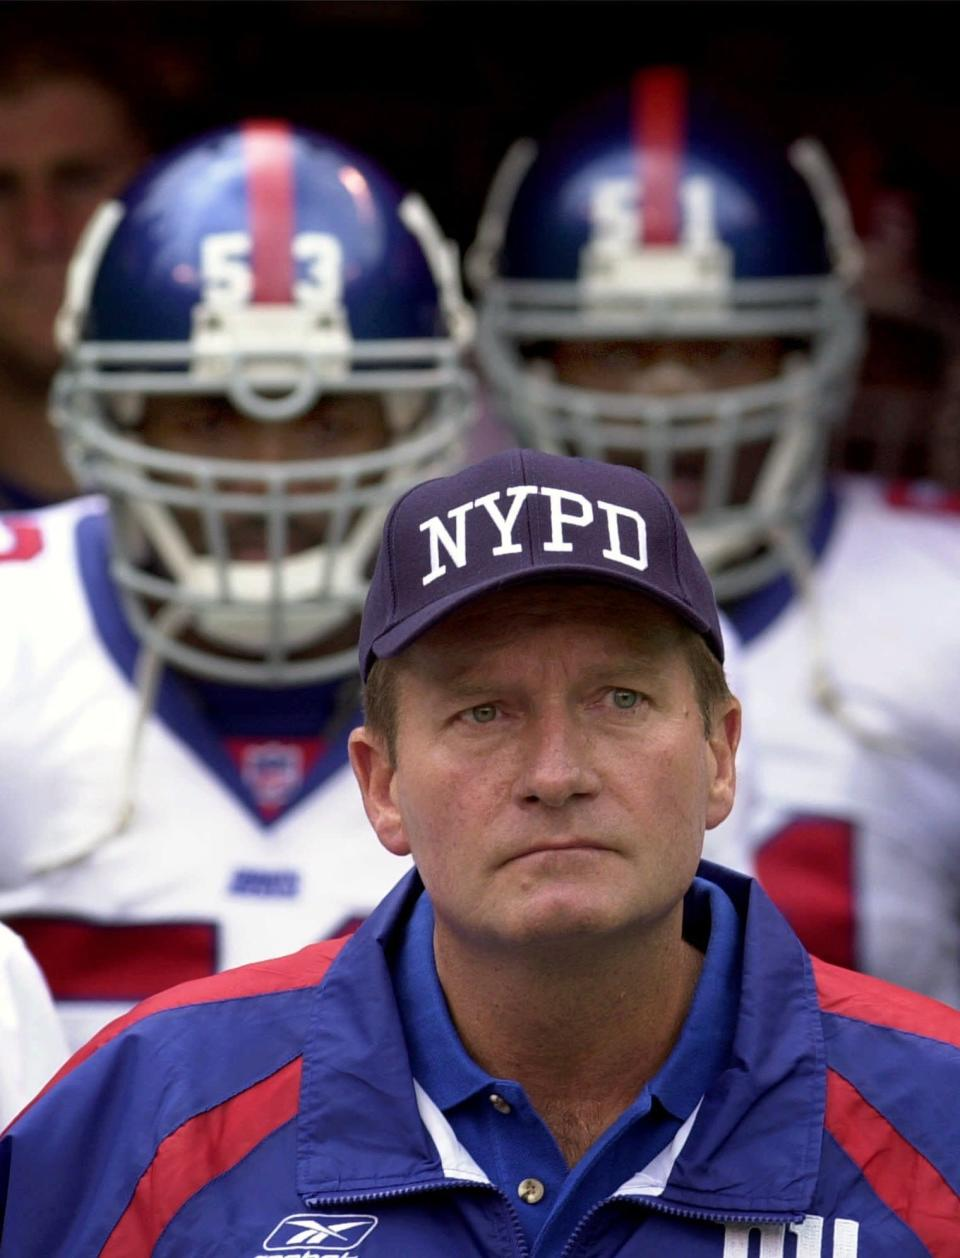 FILE - In this Sept. 23, 2001, file photo, New York Giants coach Jim Fassel wears a New York Police Department cap while pausing during a moment of silence before an NFL football game against the Kansas City Chiefs at Arrowhead Stadium in Kansas City, Mo. A backup quarterback and holder for the Giants in 2001, New York Giants offensive coordinator Jason Garrett spoke Thursday, Sept. 9, 2021, about the Sept. 11 attacks and the tragedy that claimed almost 3,000 lives that day. (AP Photo/Charlie Riedel, File)